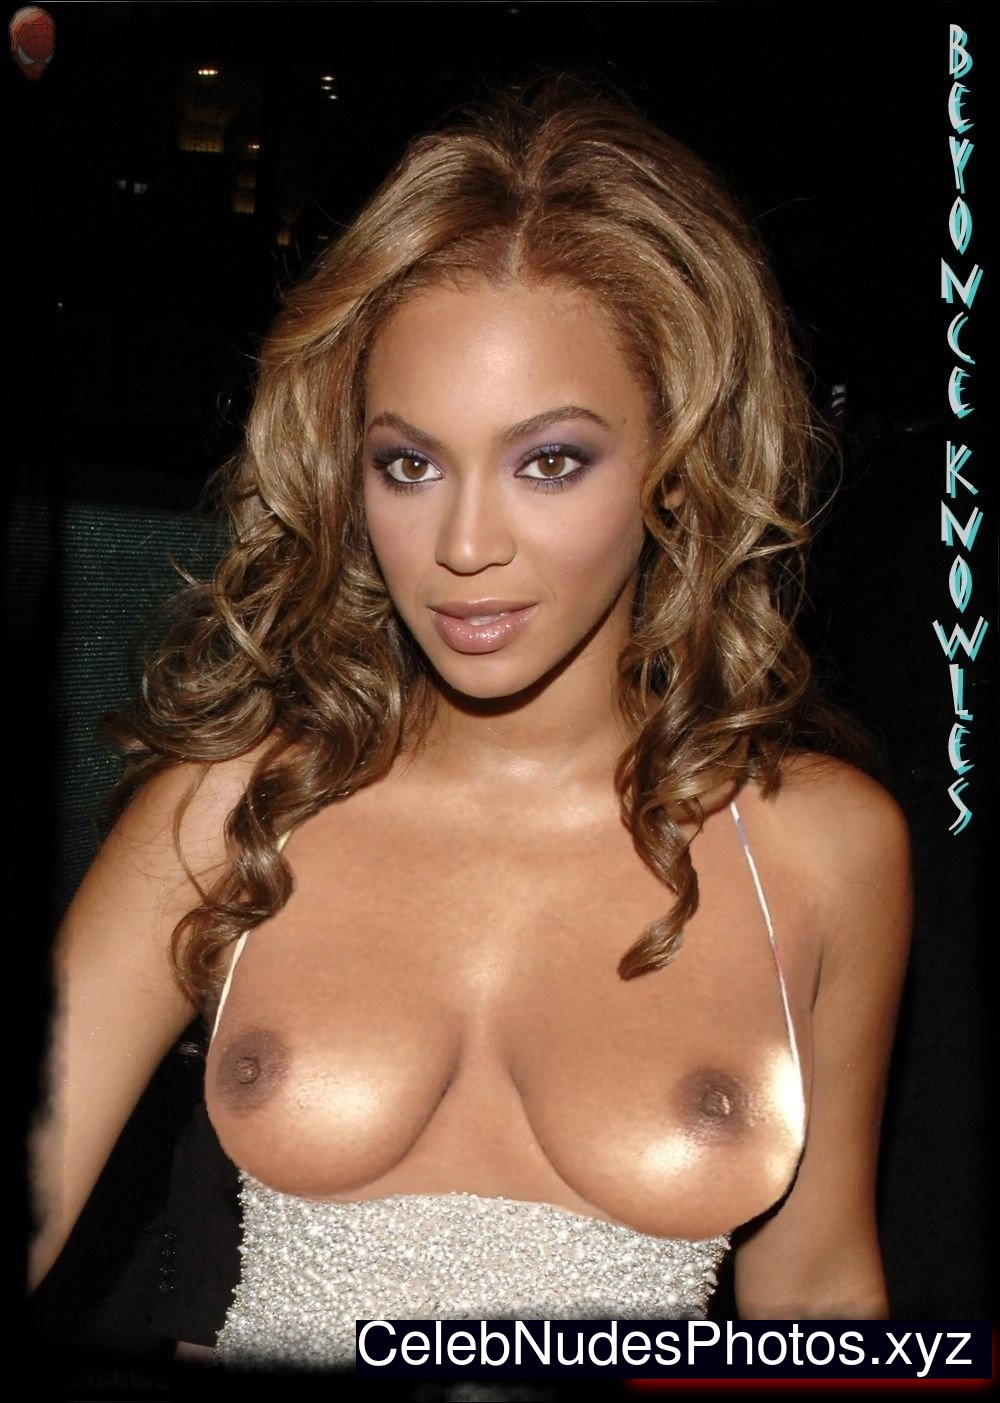 beyonce-all-the-way-naked